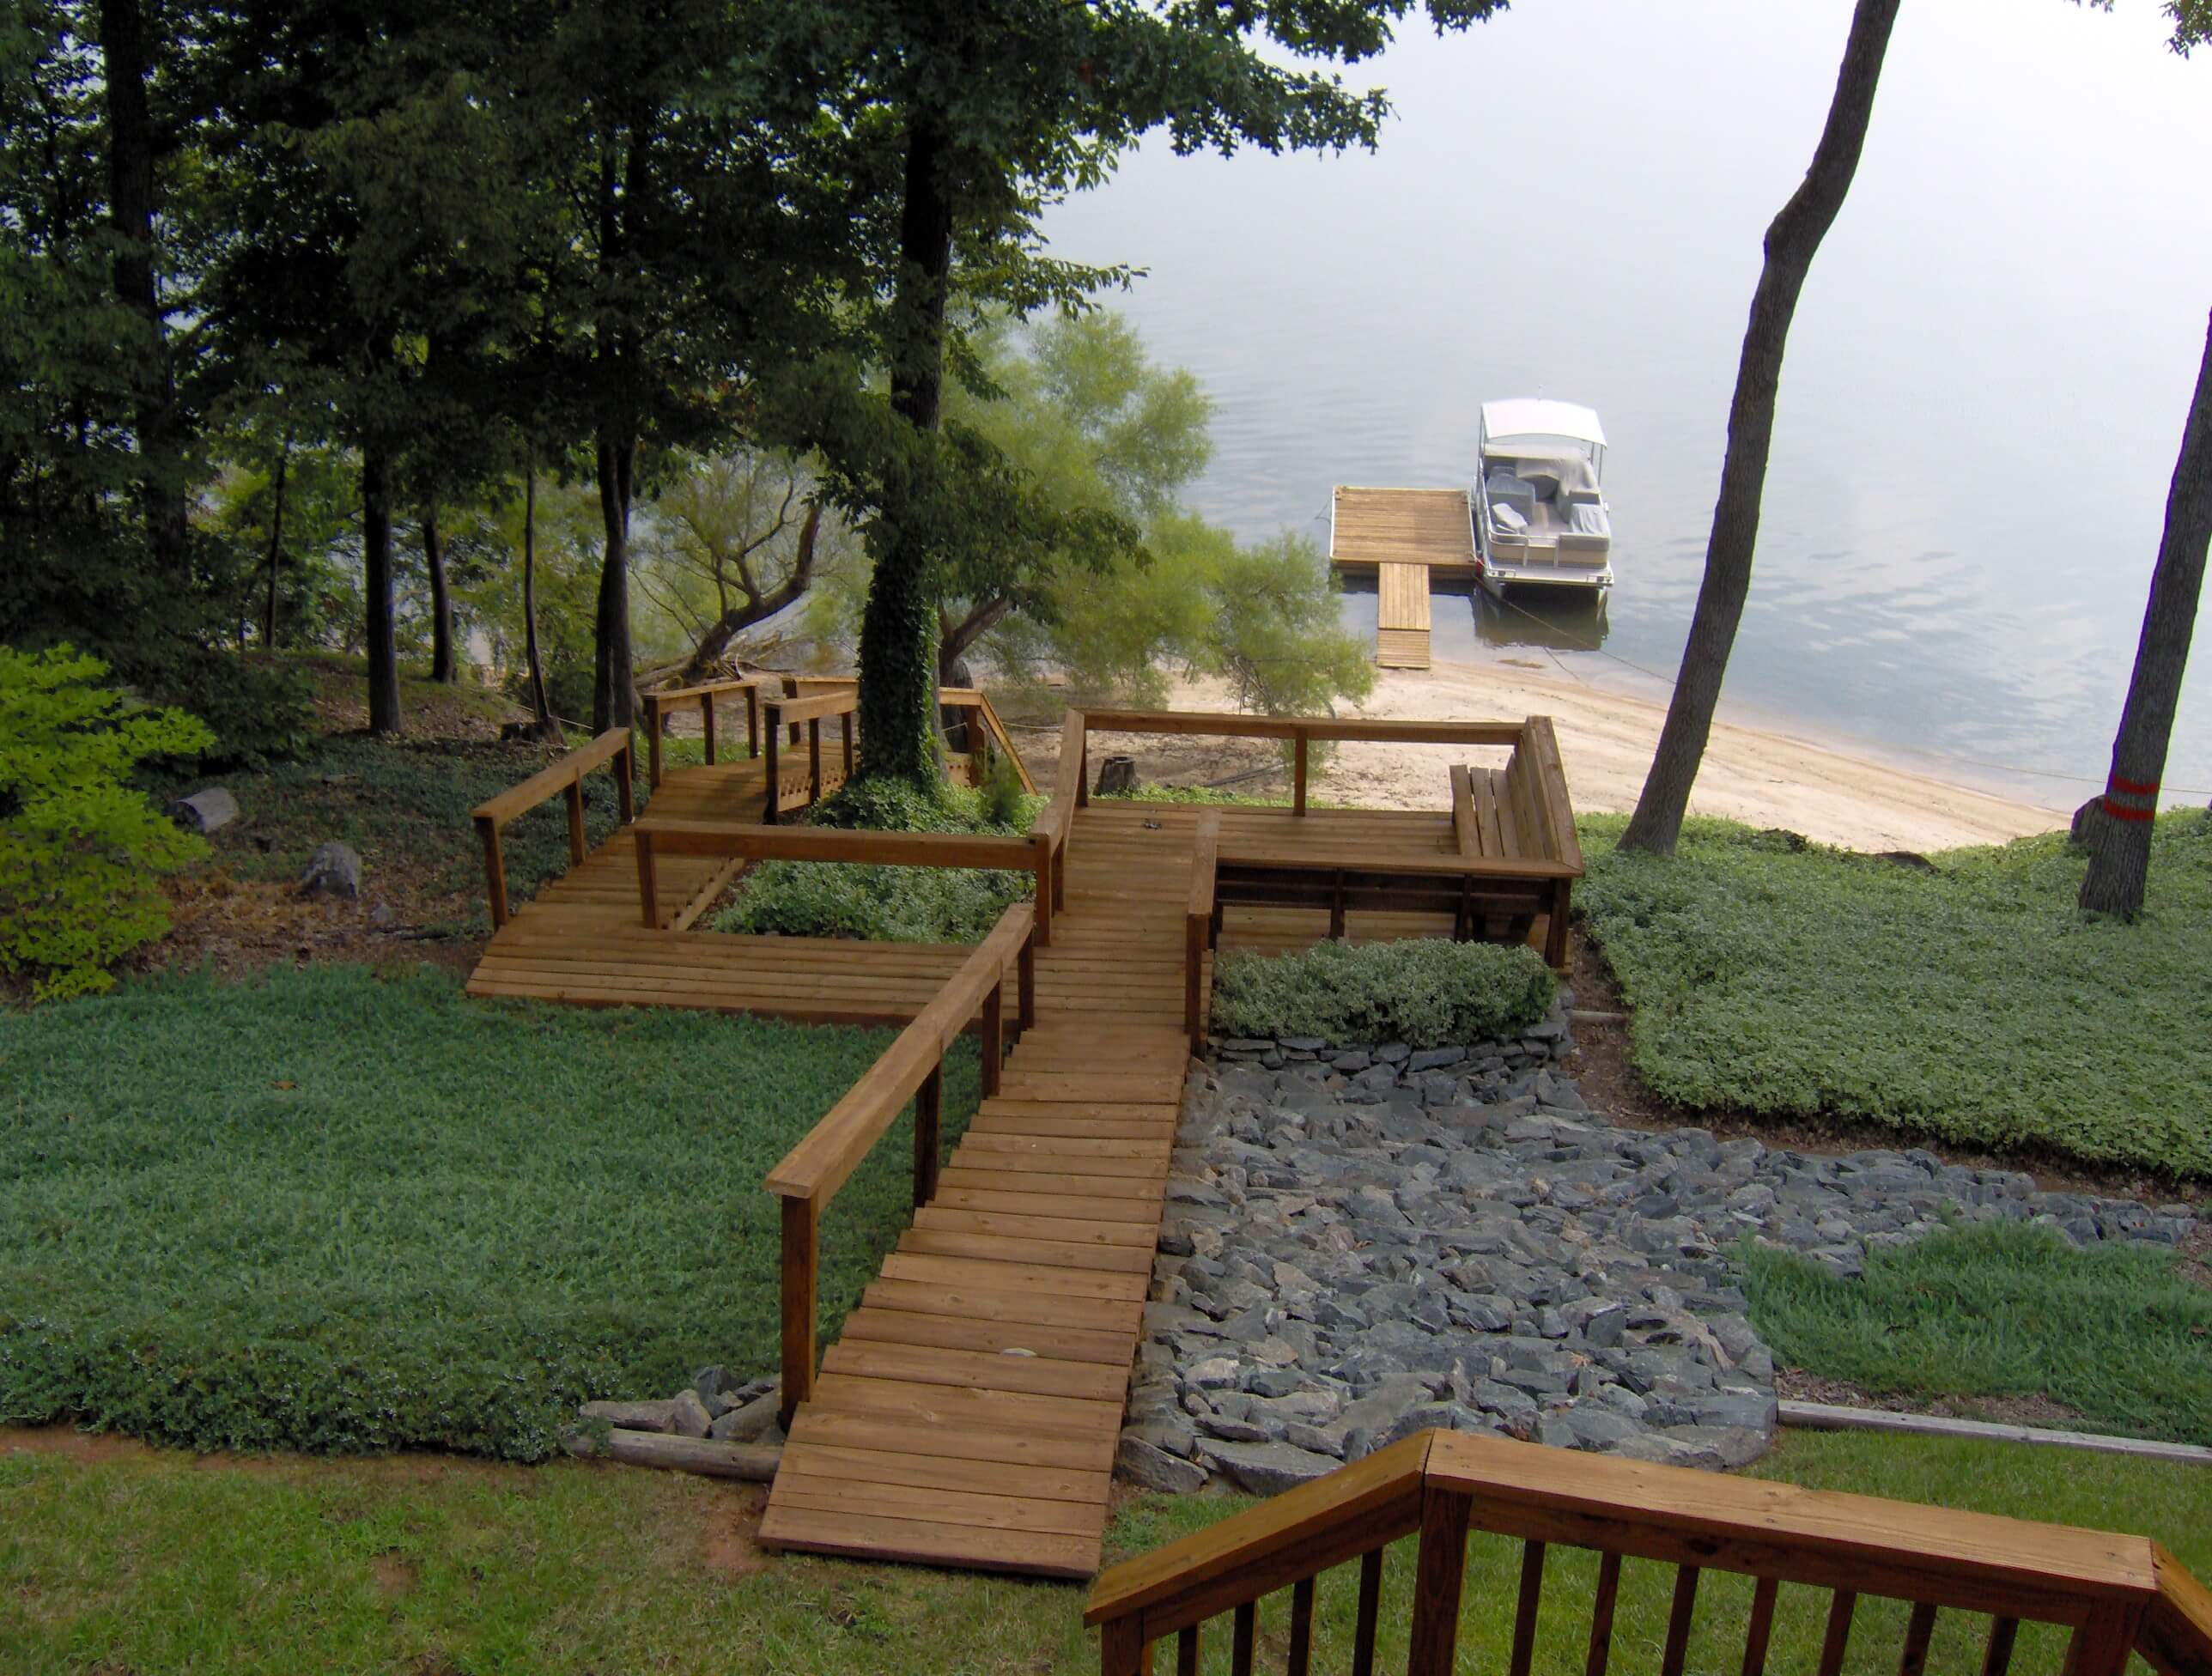 Outdoor deck by Kerr Lake (Buggs Island)